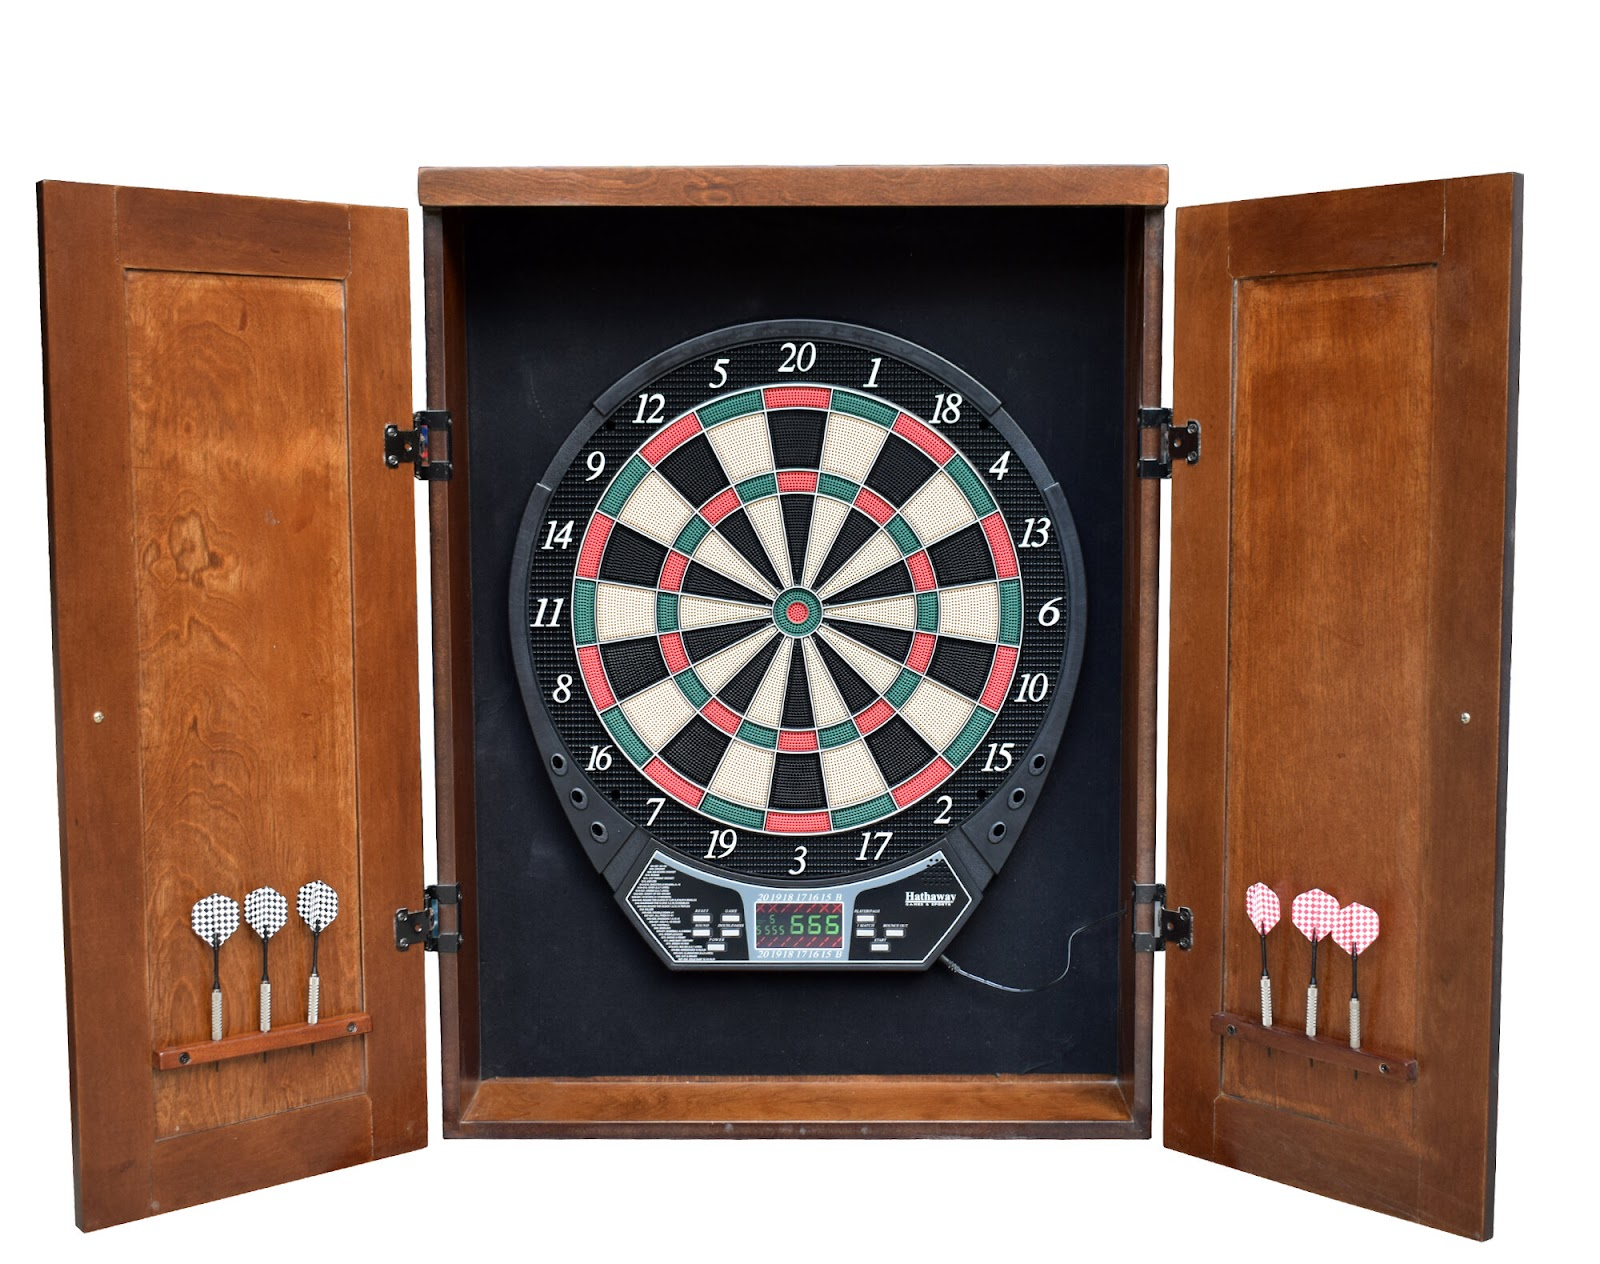 An electronic dart board with a cabinet included